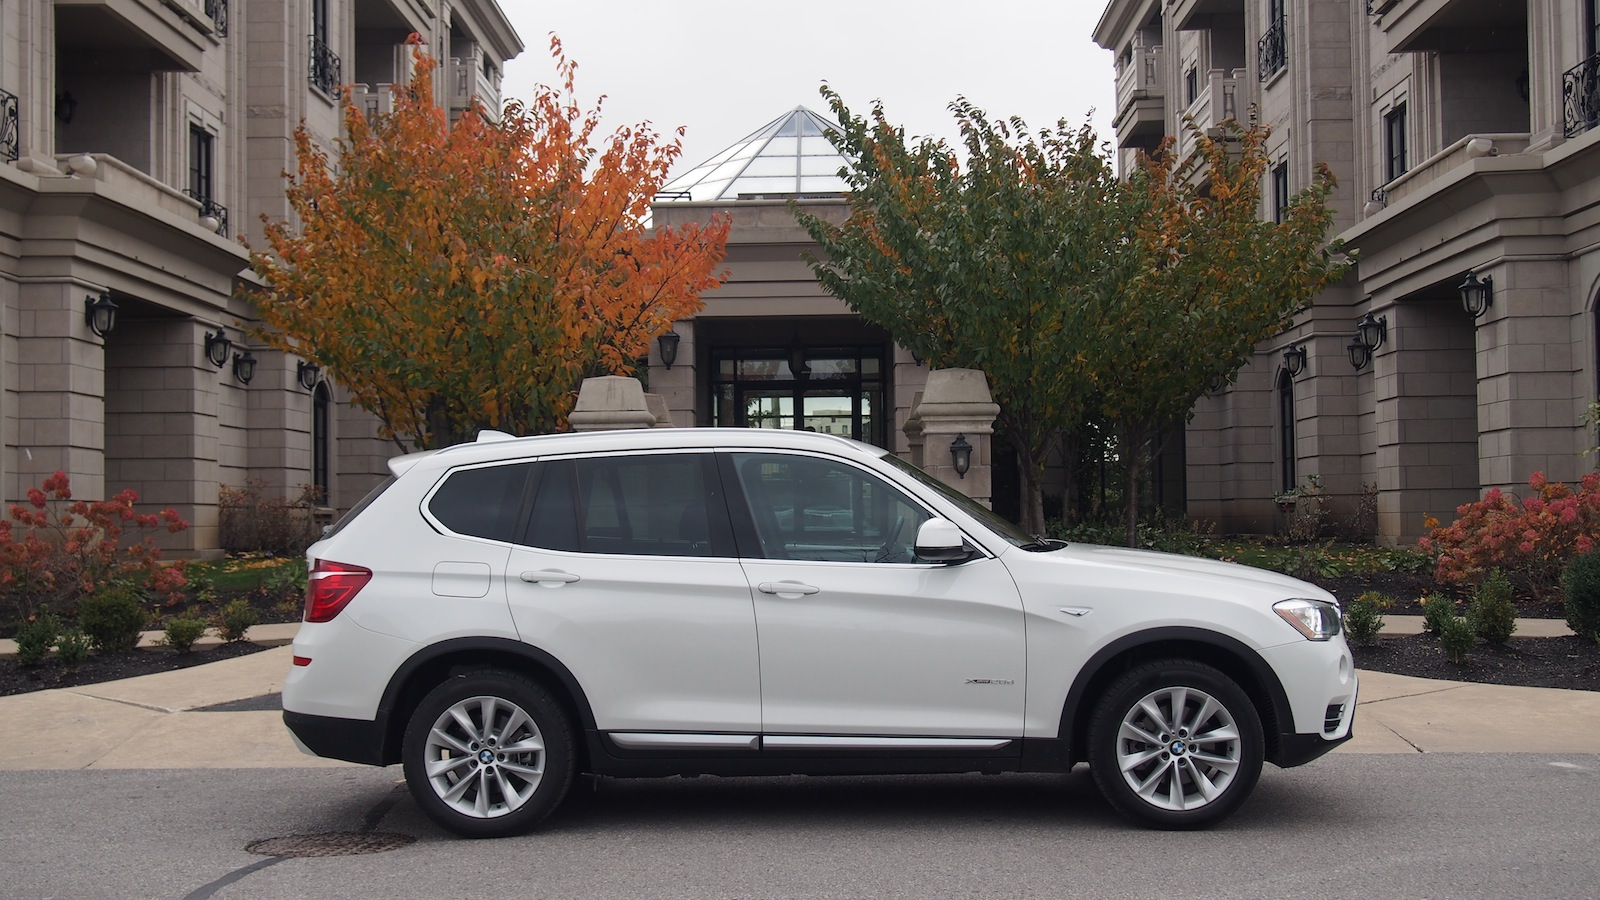 review: 2015 bmw x3 xdrive28d | canadian auto review